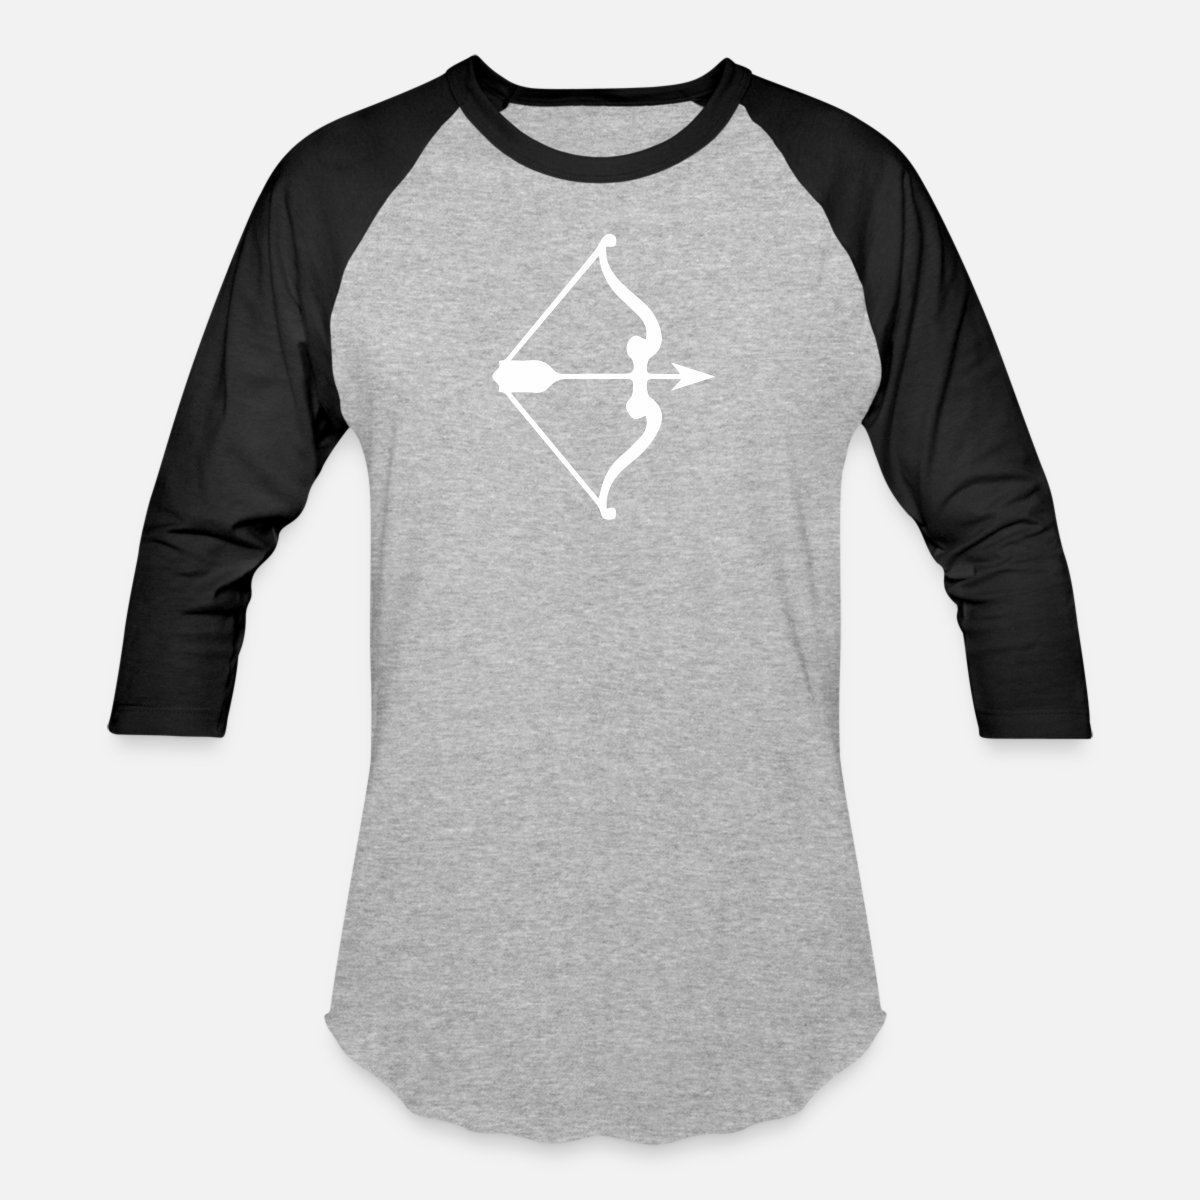 Sagittarius Bow and arrow funny tshirt Baseball T-Shirt - heather gray/black